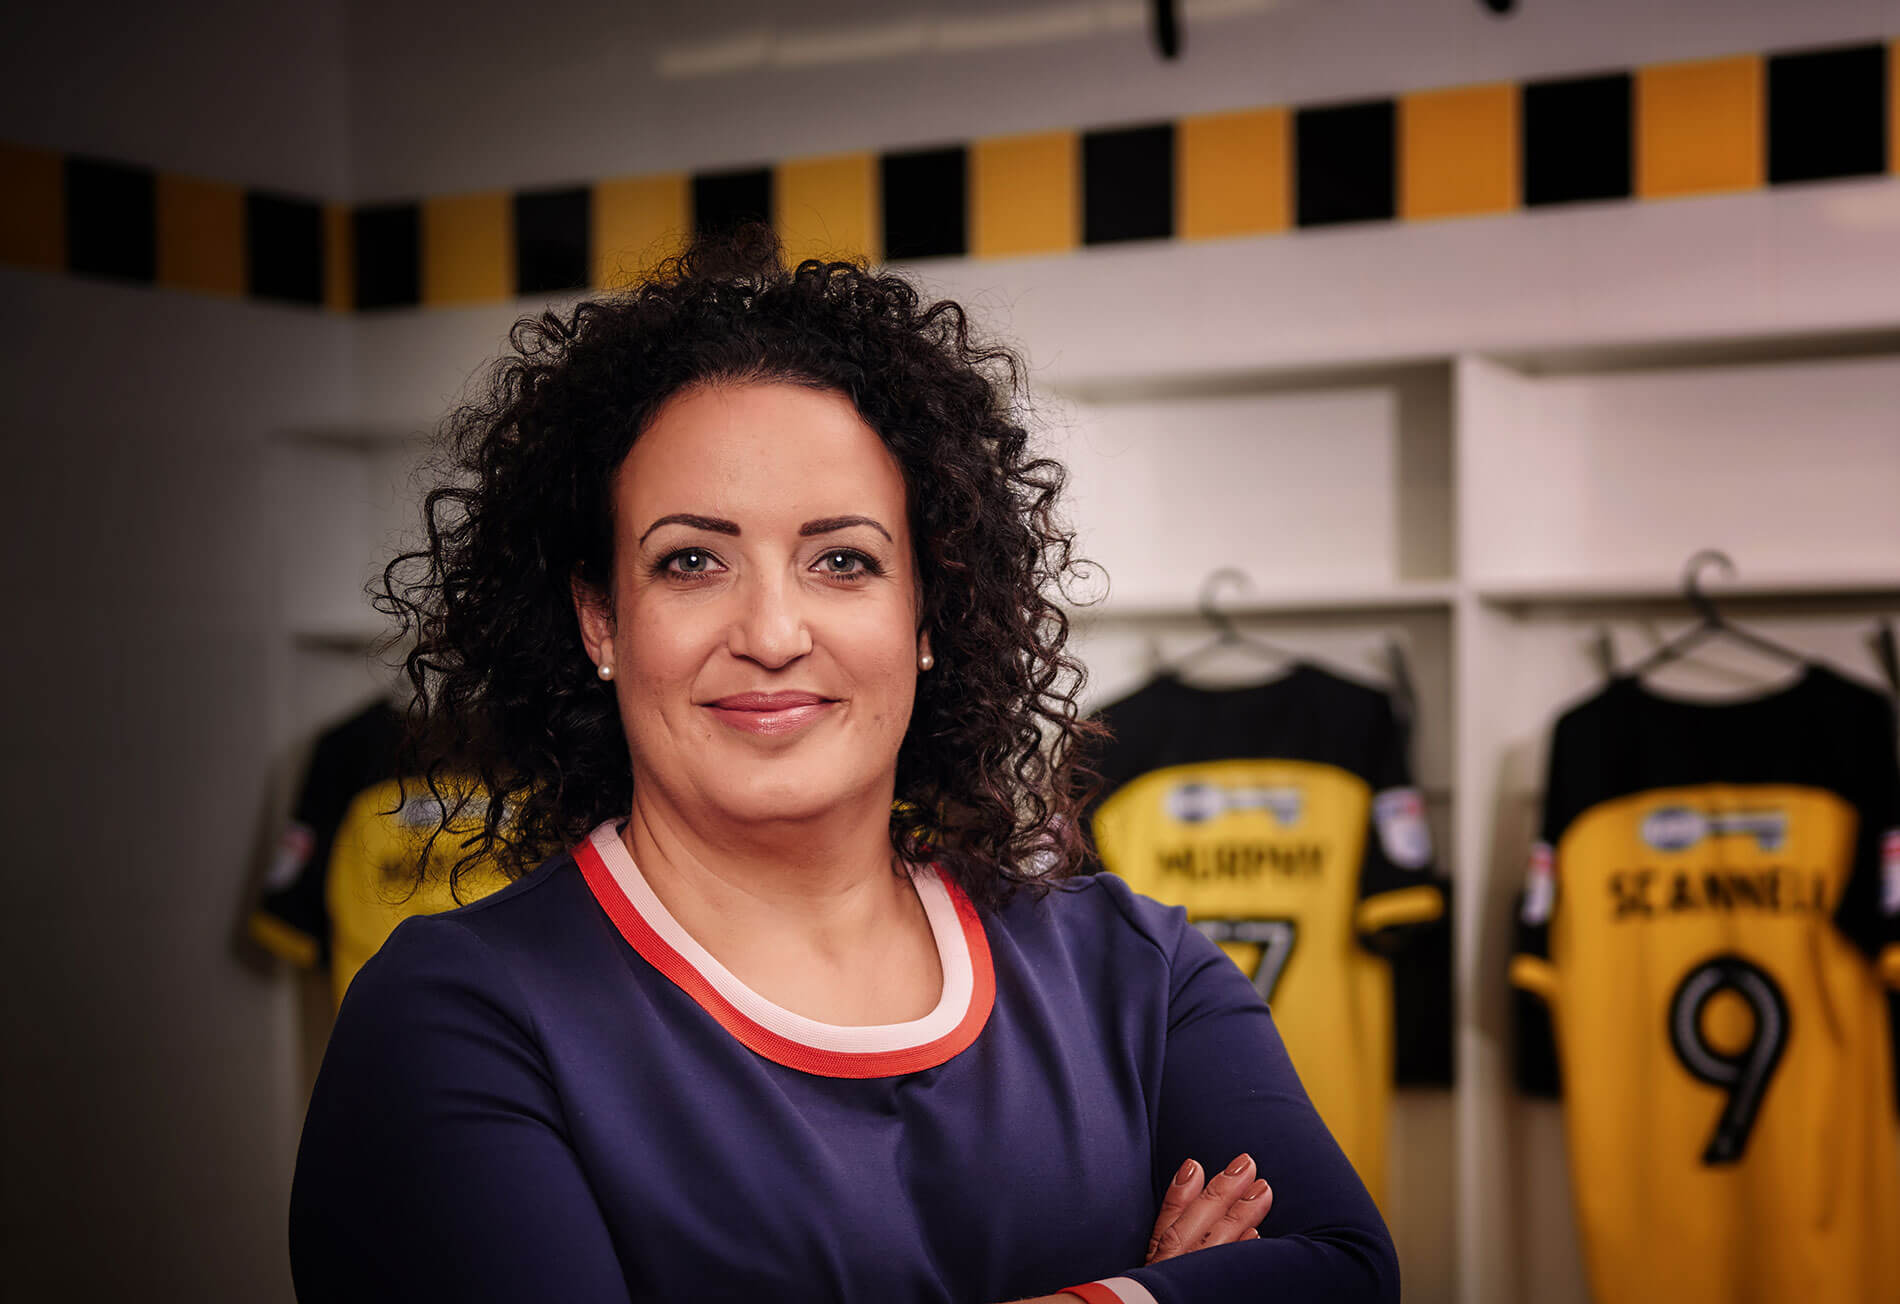 Profile photo of Fleur Robinson inside the changing rooms of Burton Albion FC